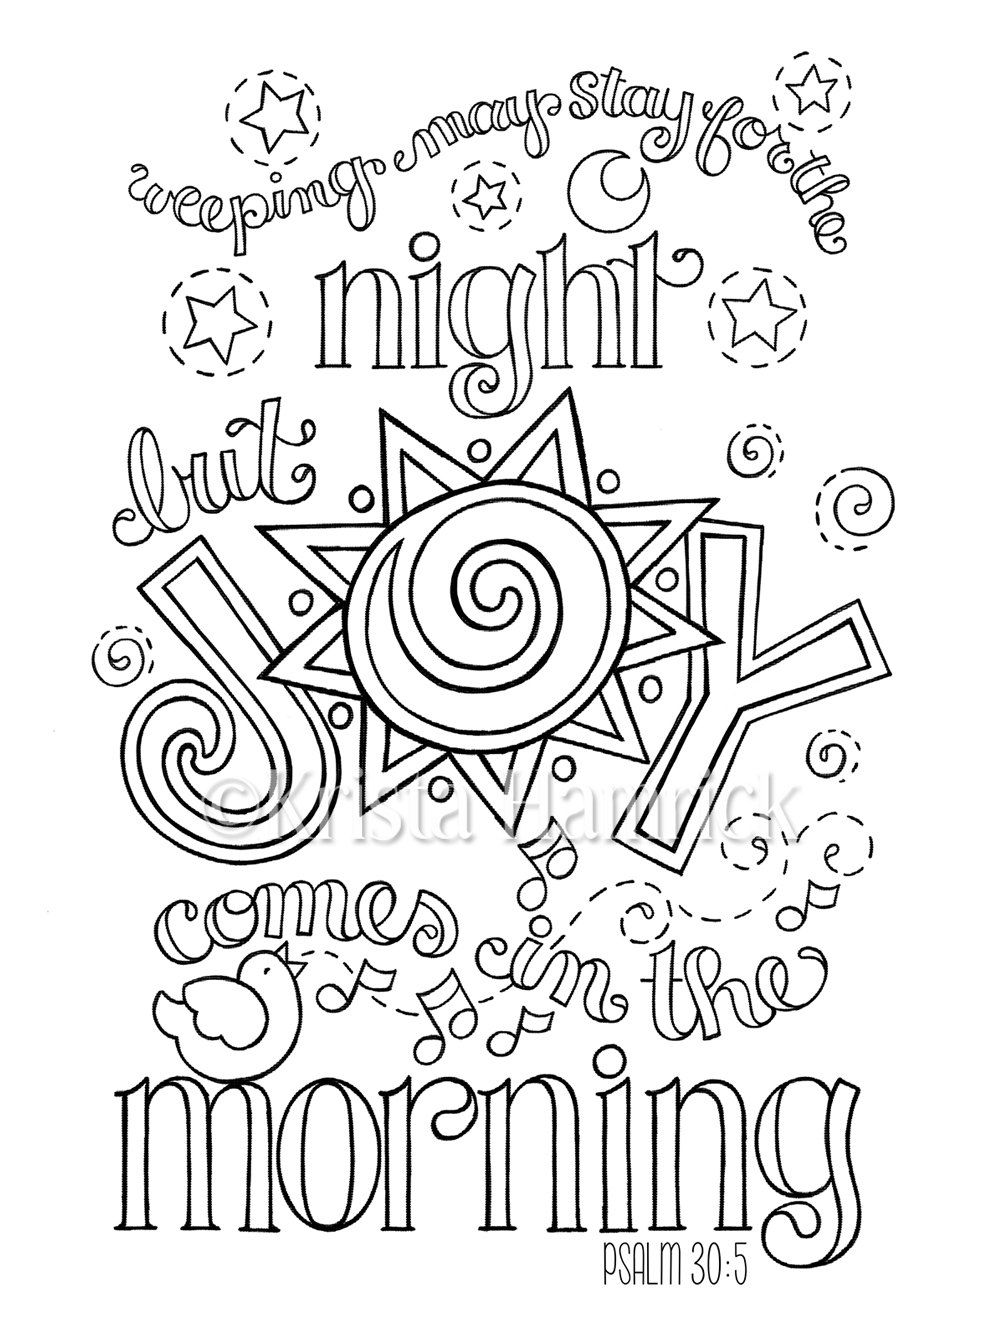 8 5 x 11 printable coloring pages - Joy Comes In The Morning Coloring Page Two Sizes Included 8 5x11 6x8